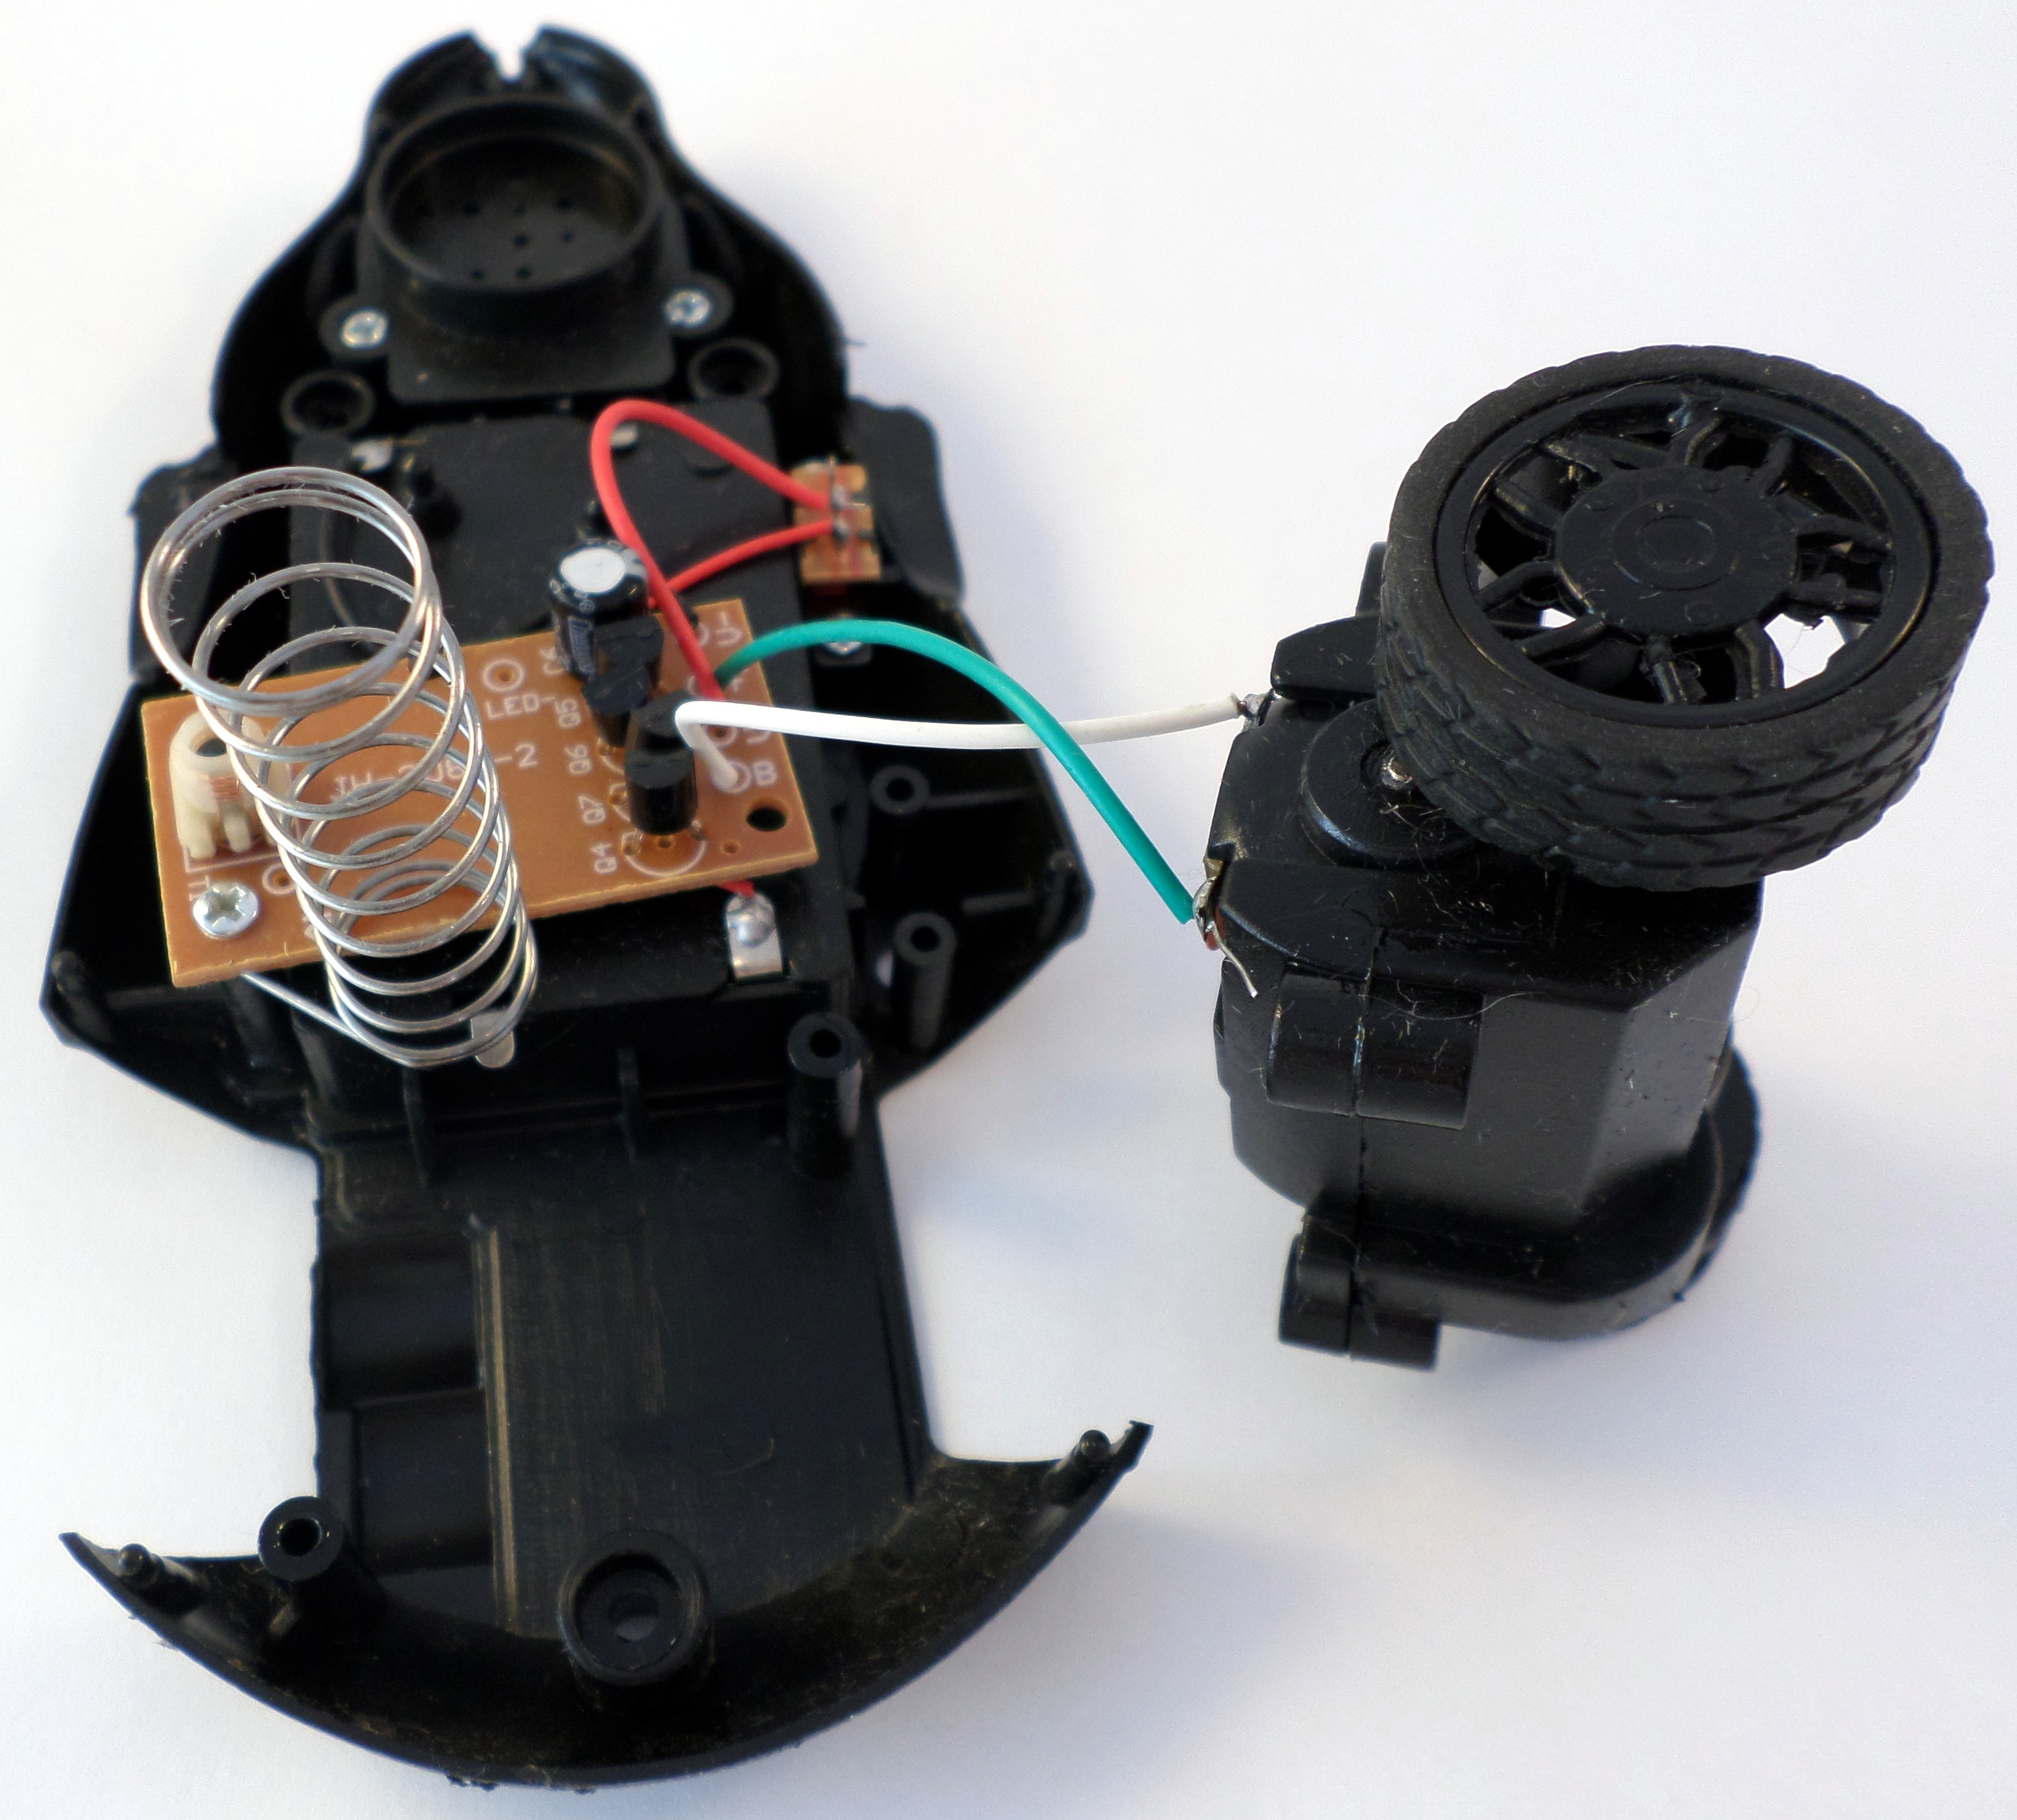 Picture of Disassembling the RC Mouse